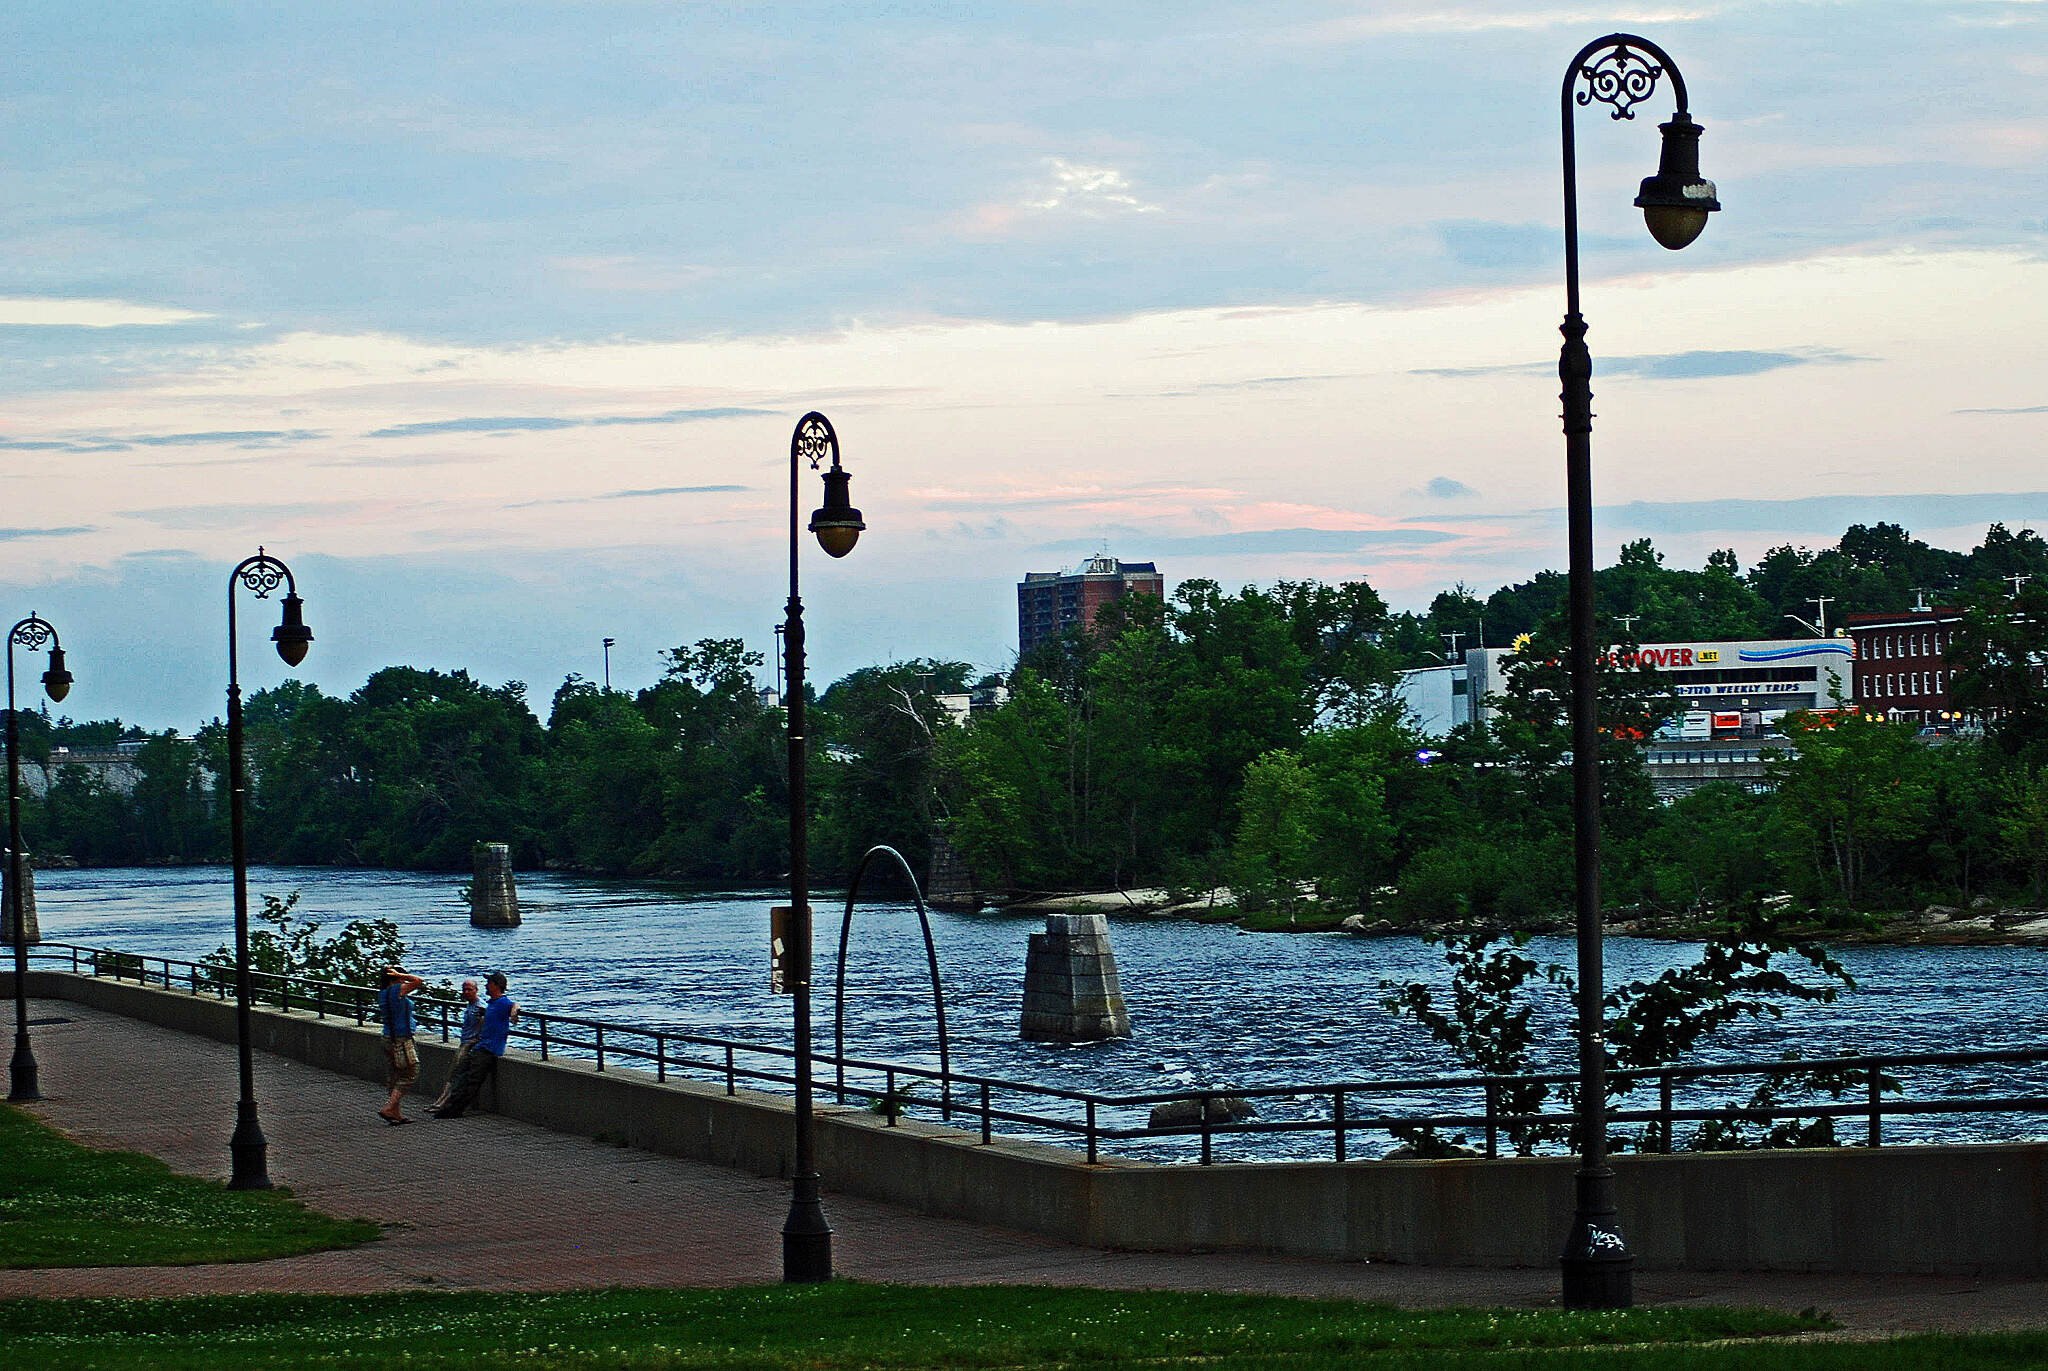 Heritage Trail (Manchester) Along the River Walk in Arms Park A view of the Merrimack River from Arms Park.